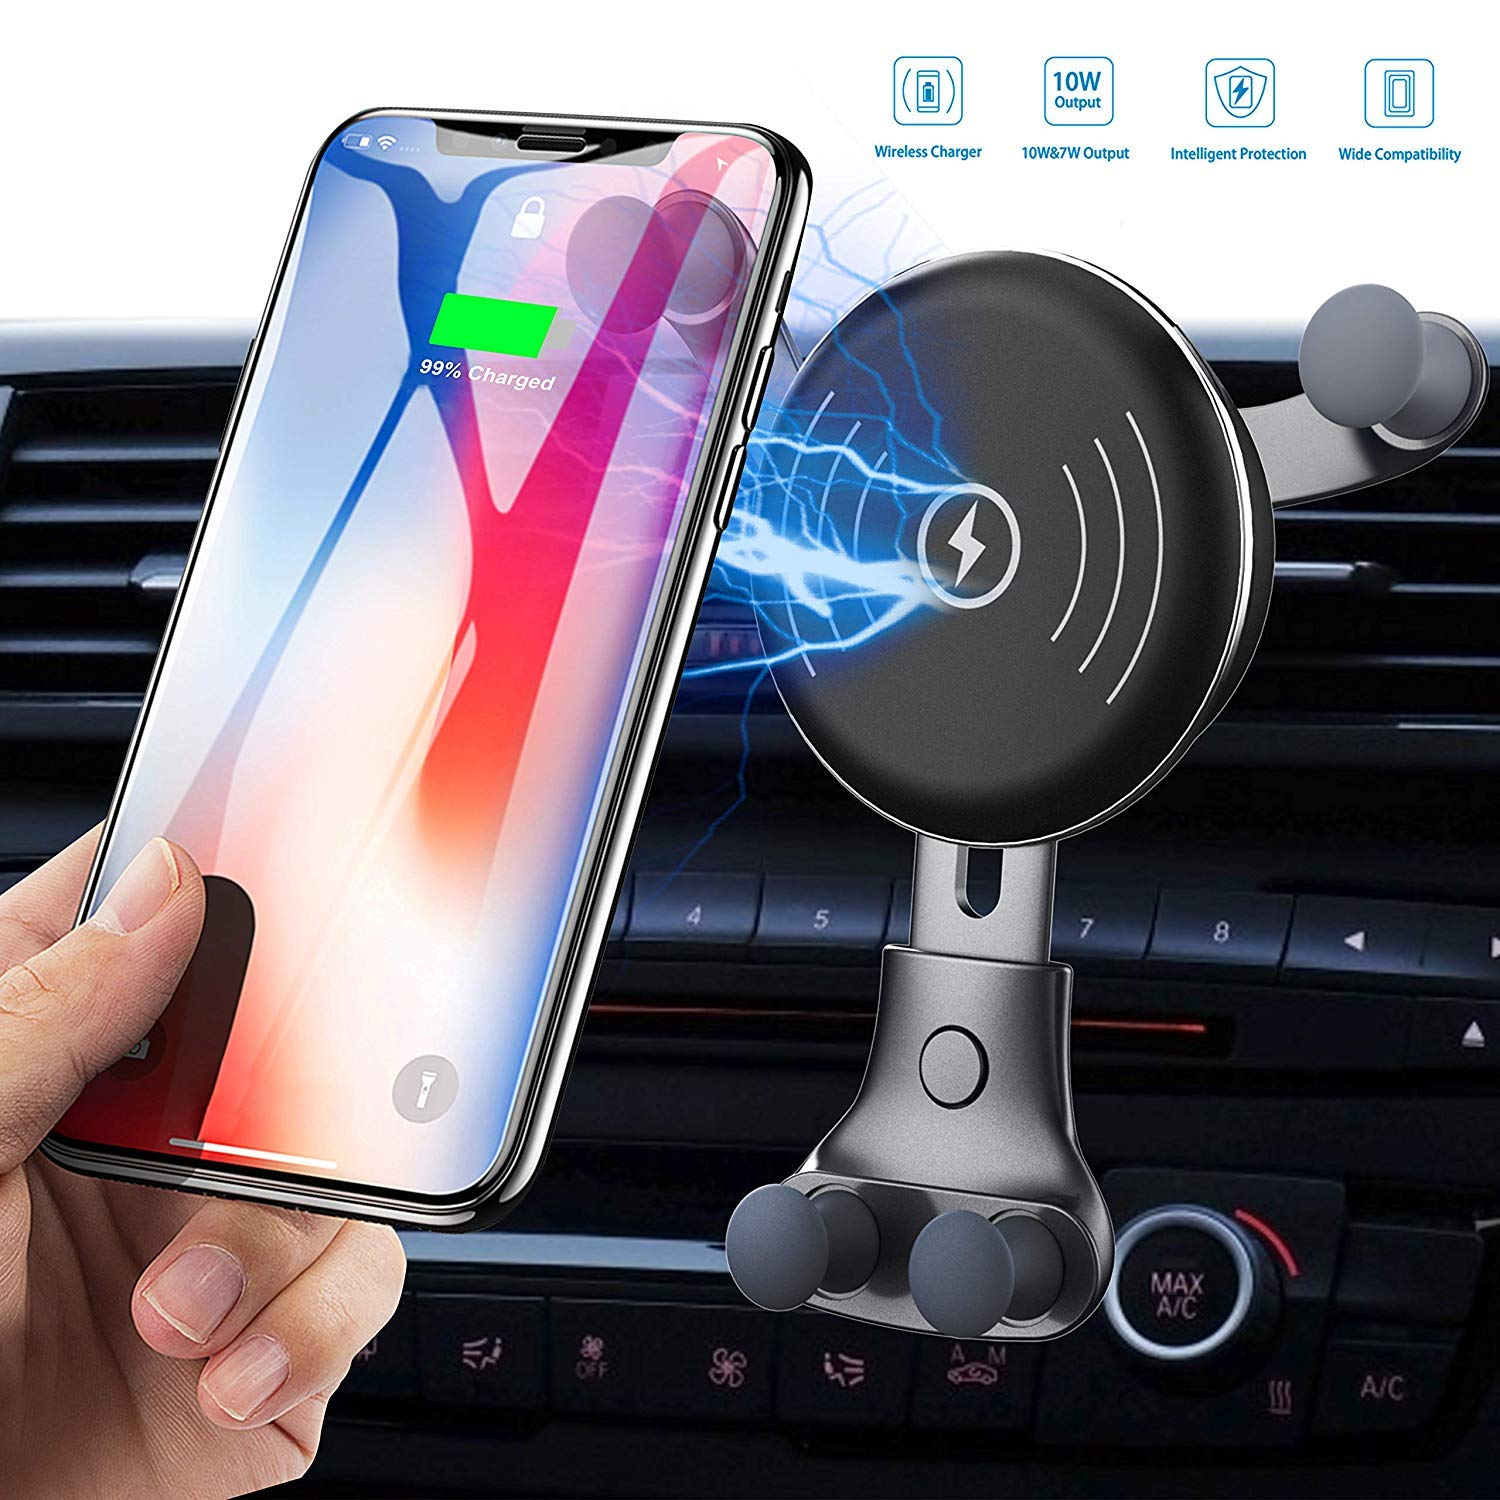 Car Charger, Air Vent Phone Holder, Wireless Car Kit, 10W Compatible for Samsung Galaxy S9 811recar10 by BESTHING